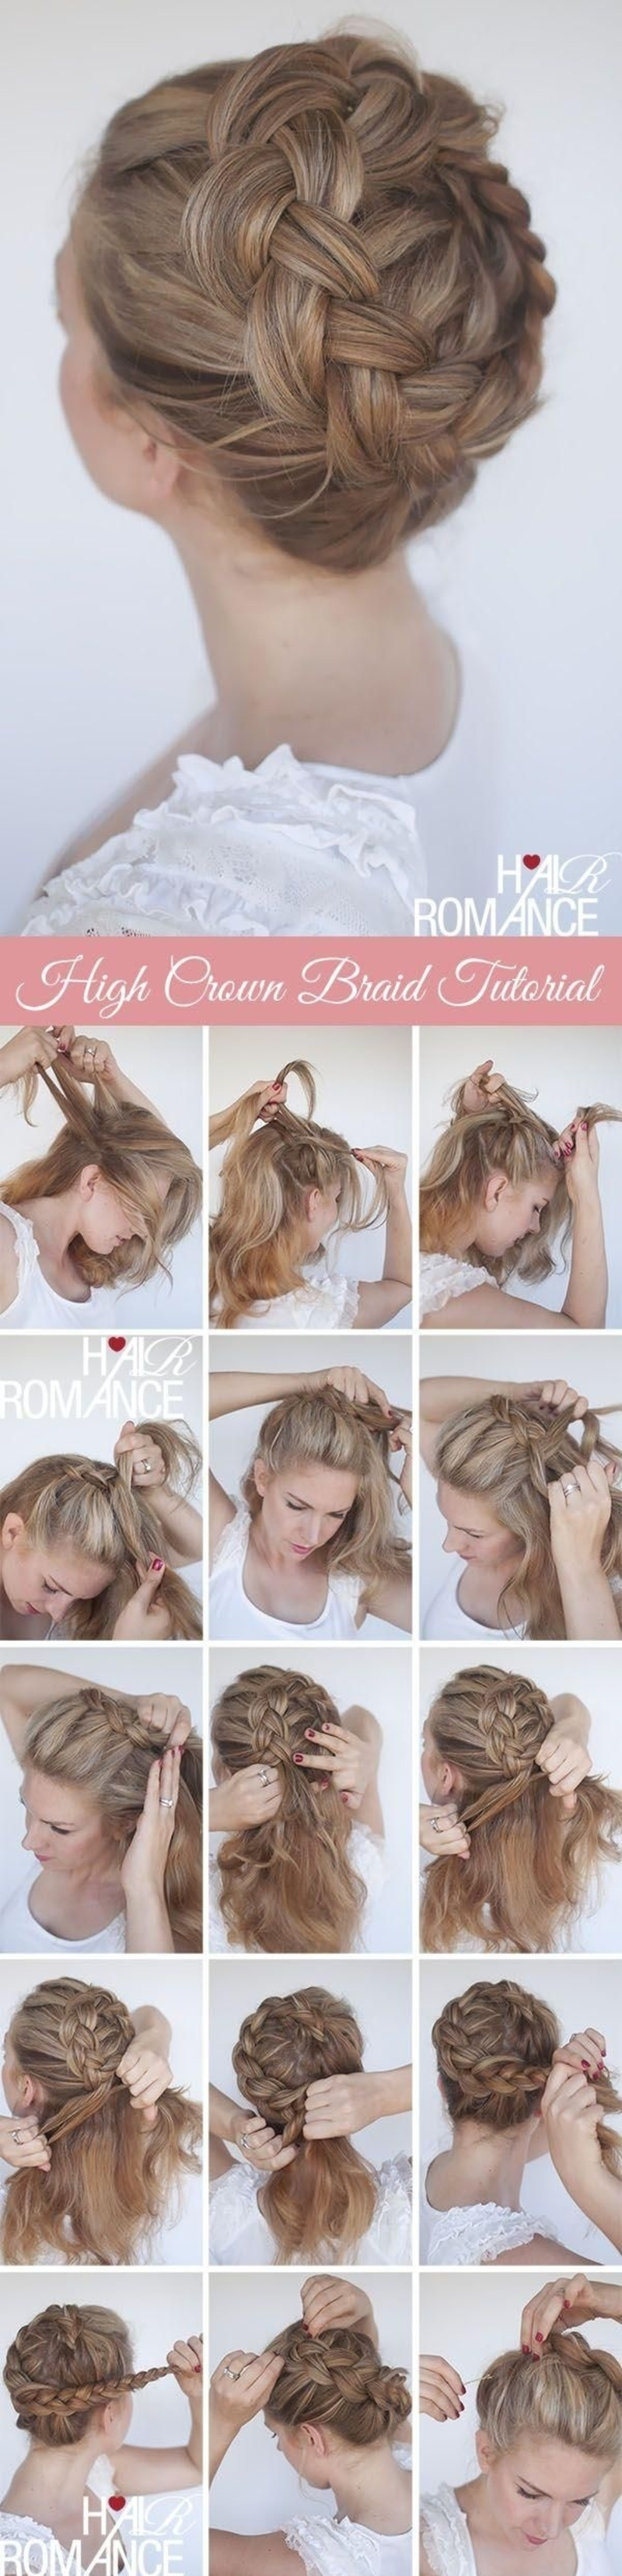 43 Fancy Braided Hairstyle Ideas from Pinterest